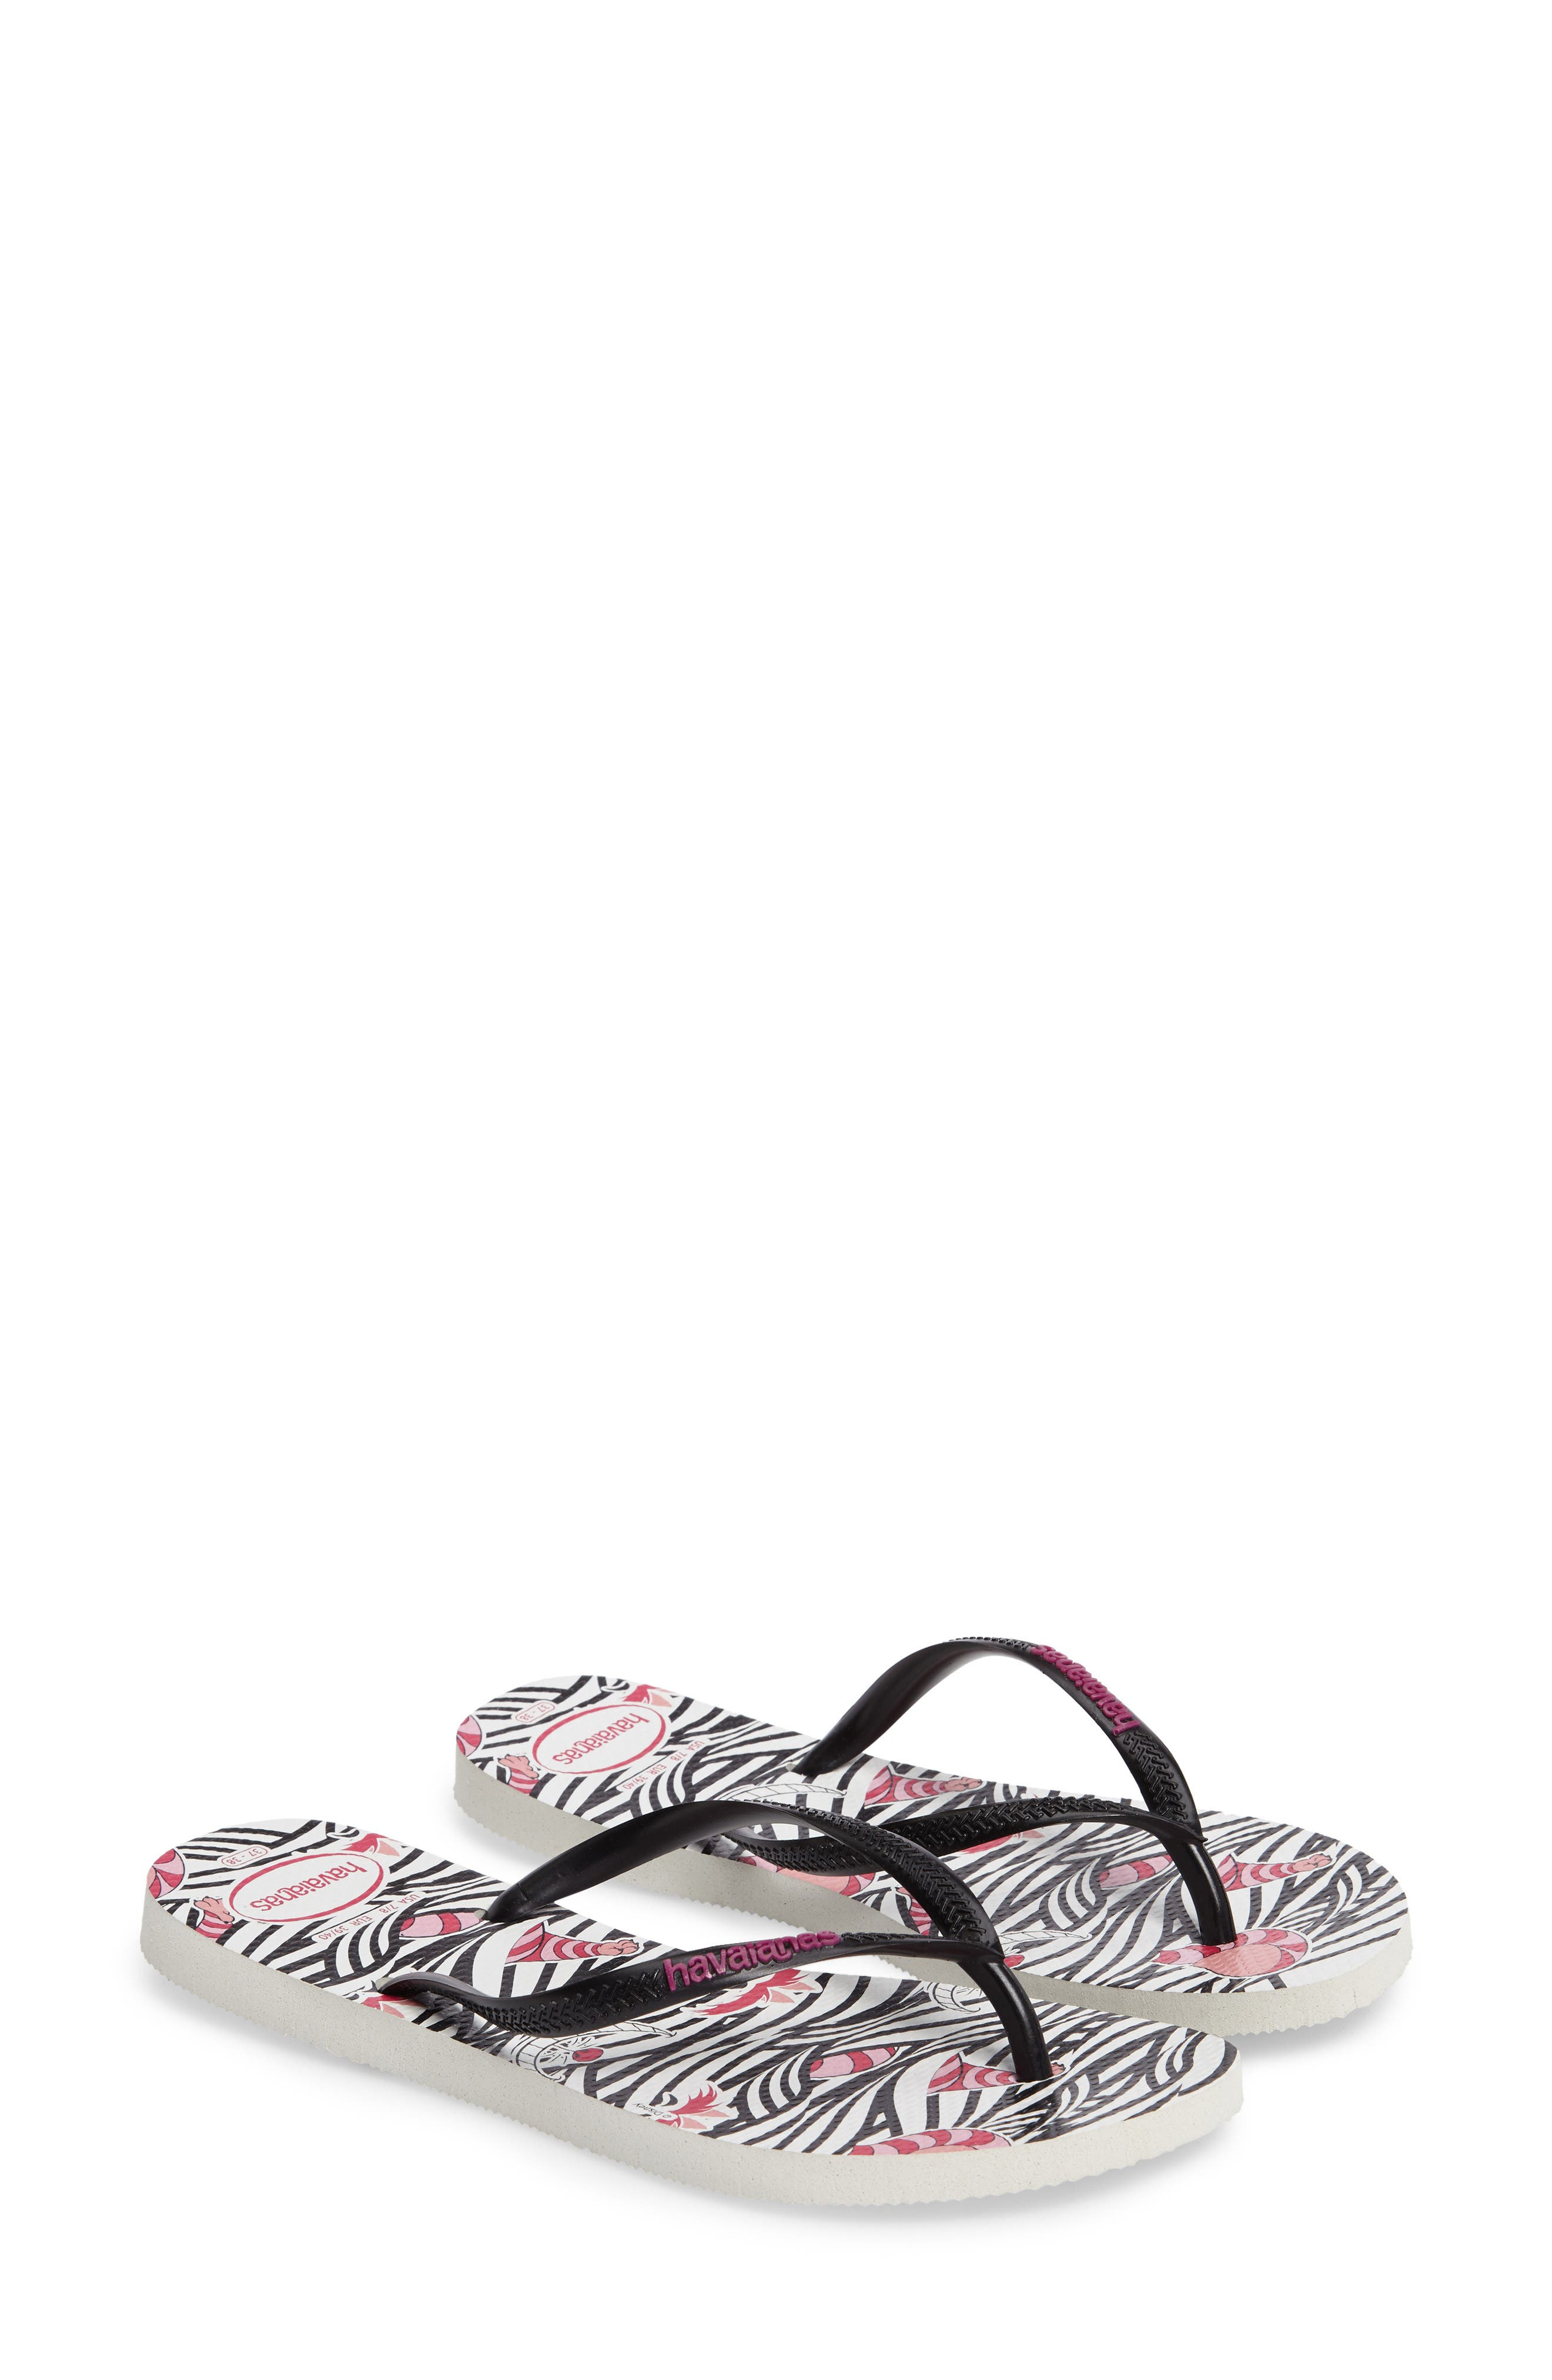 Alternate Image 1 Selected - Havaianas Slim Millennial Disney Thematic Flip Flop (Women)